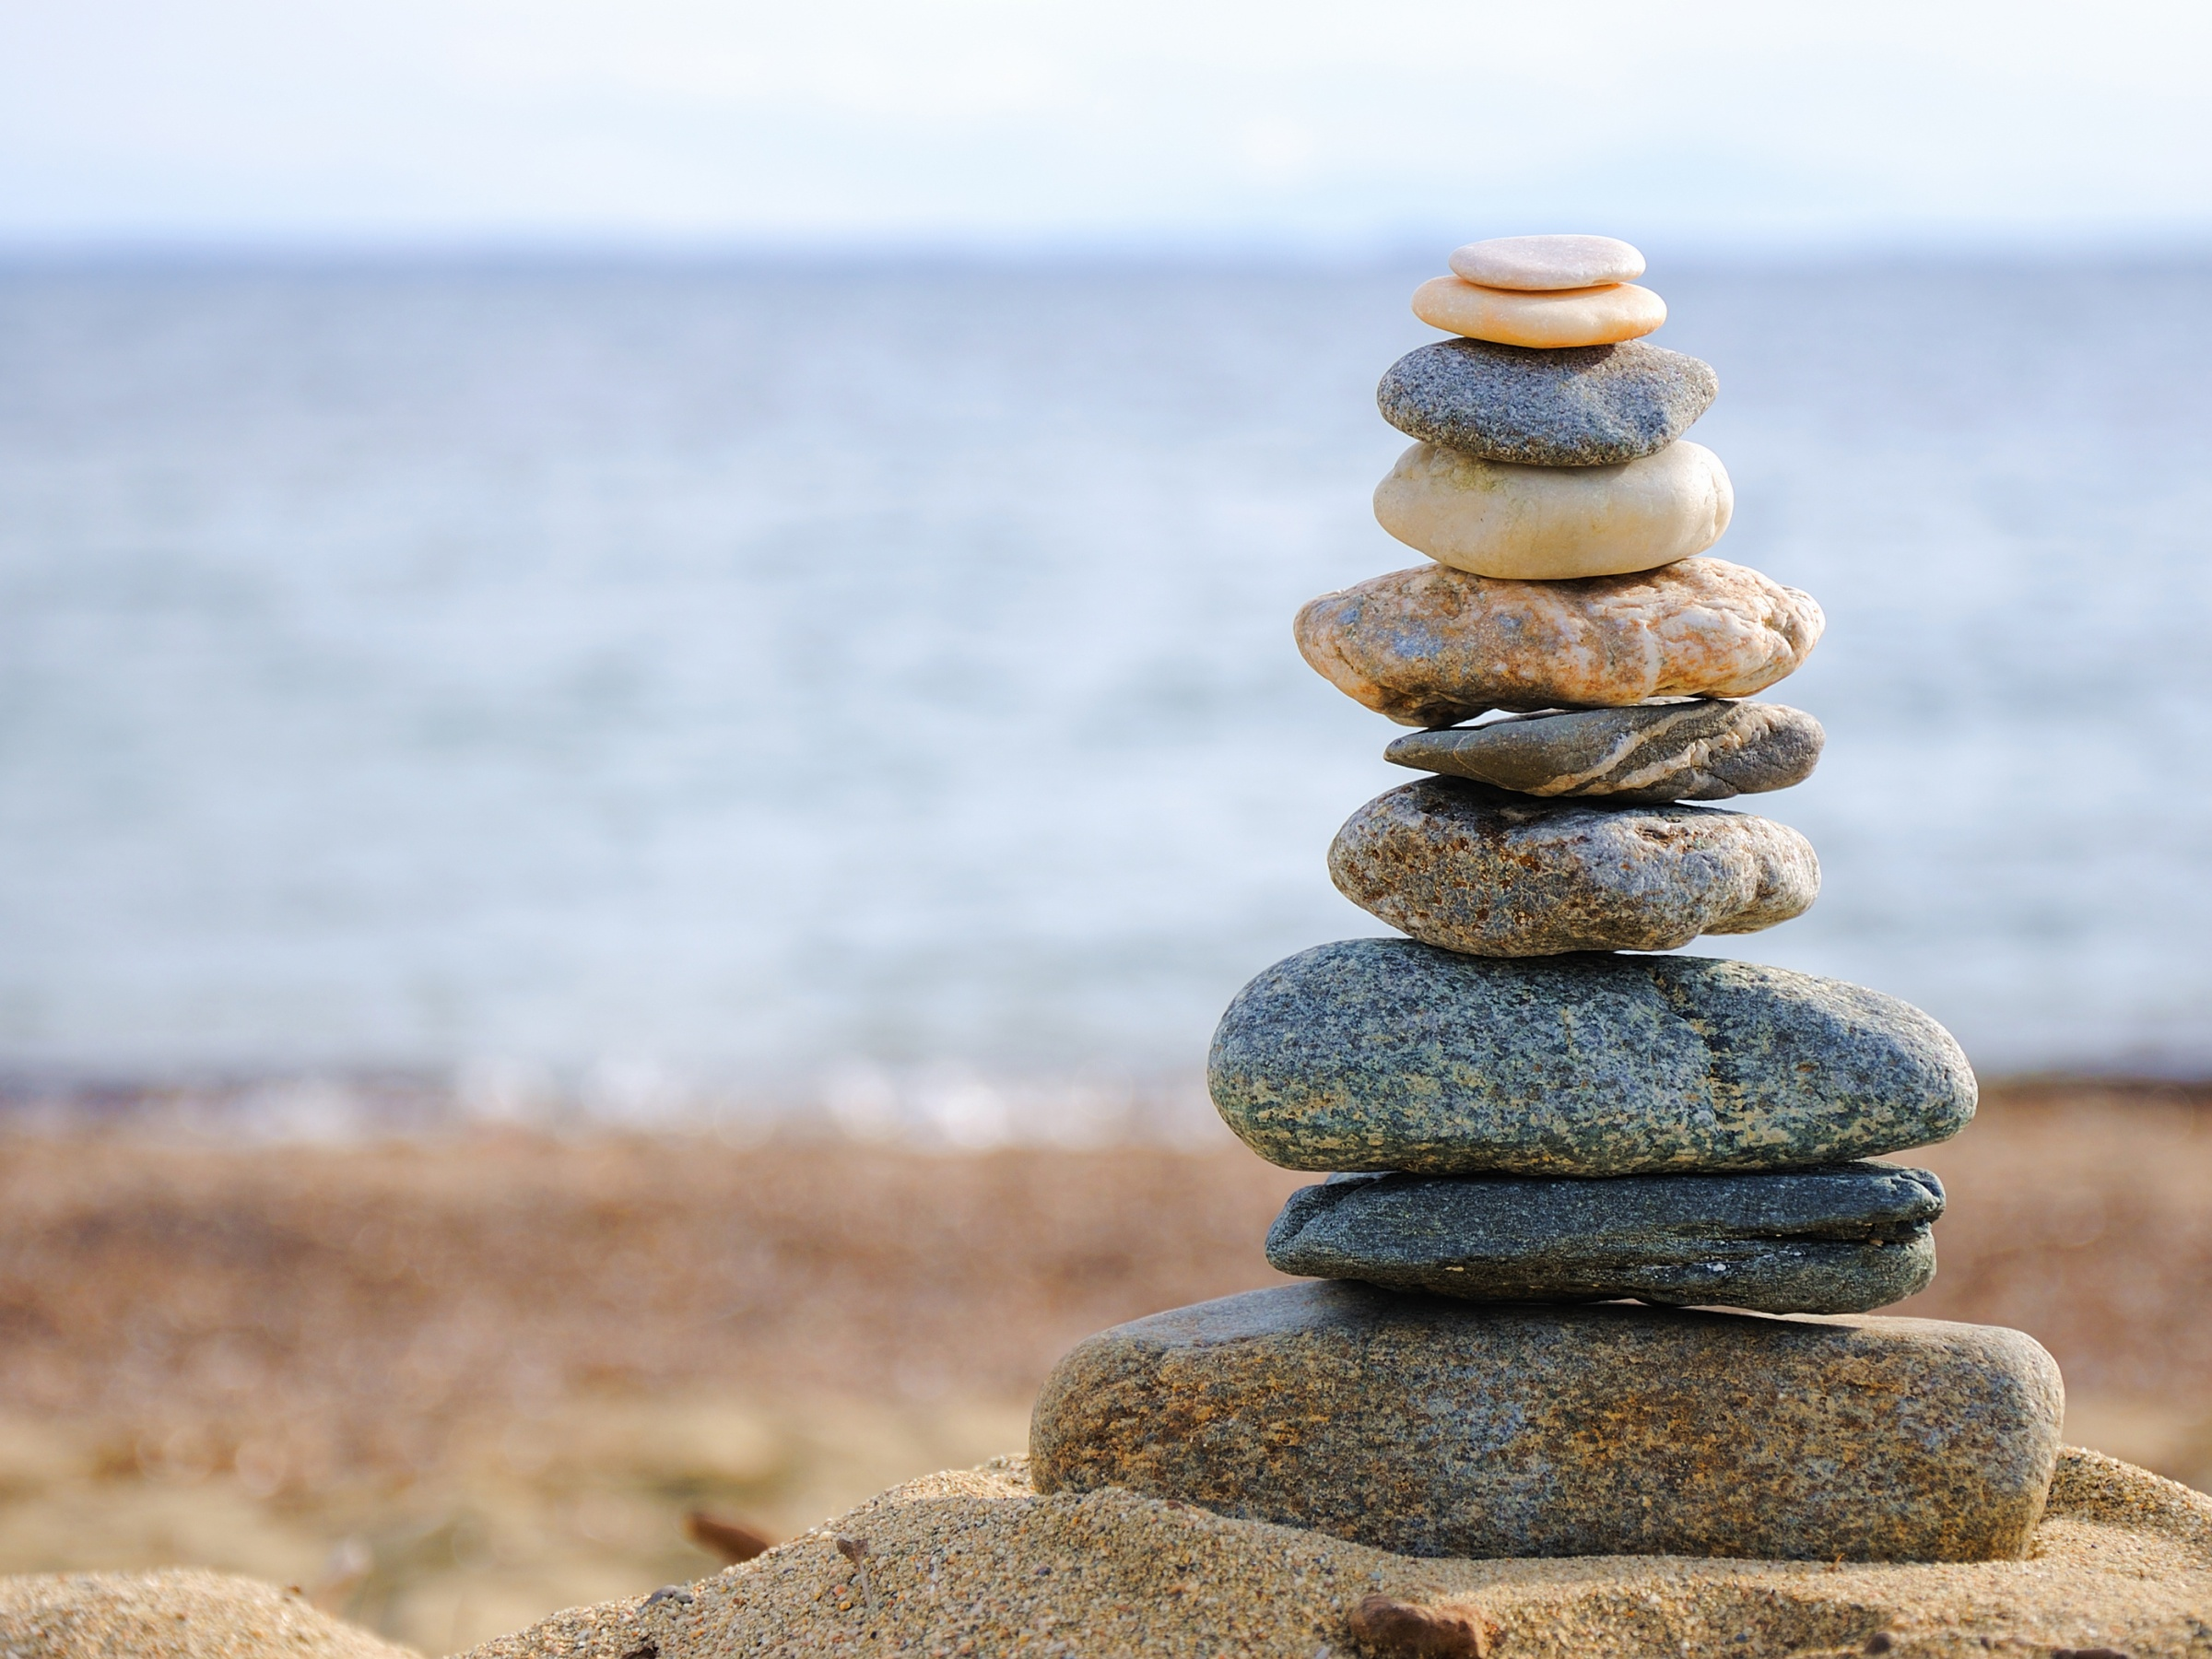 A pyramid of stones and pebbles balancing on one another